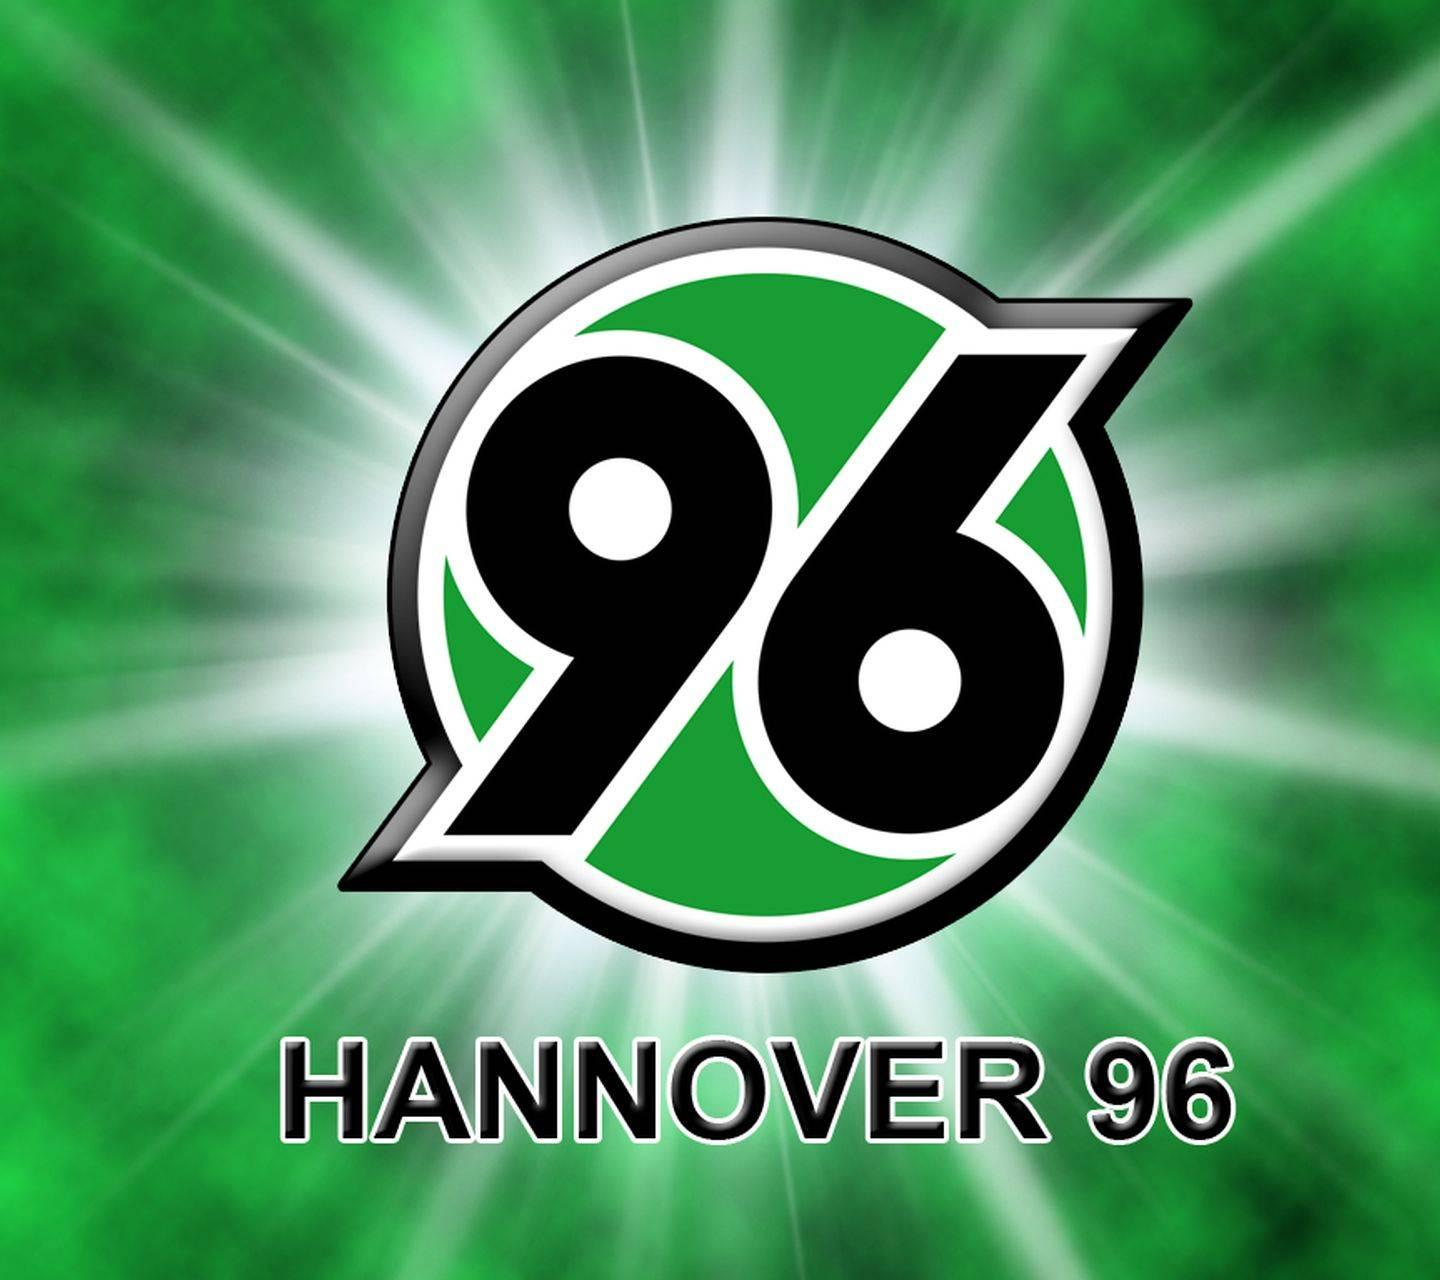 Hannover 96 Wallpapers by lo_man